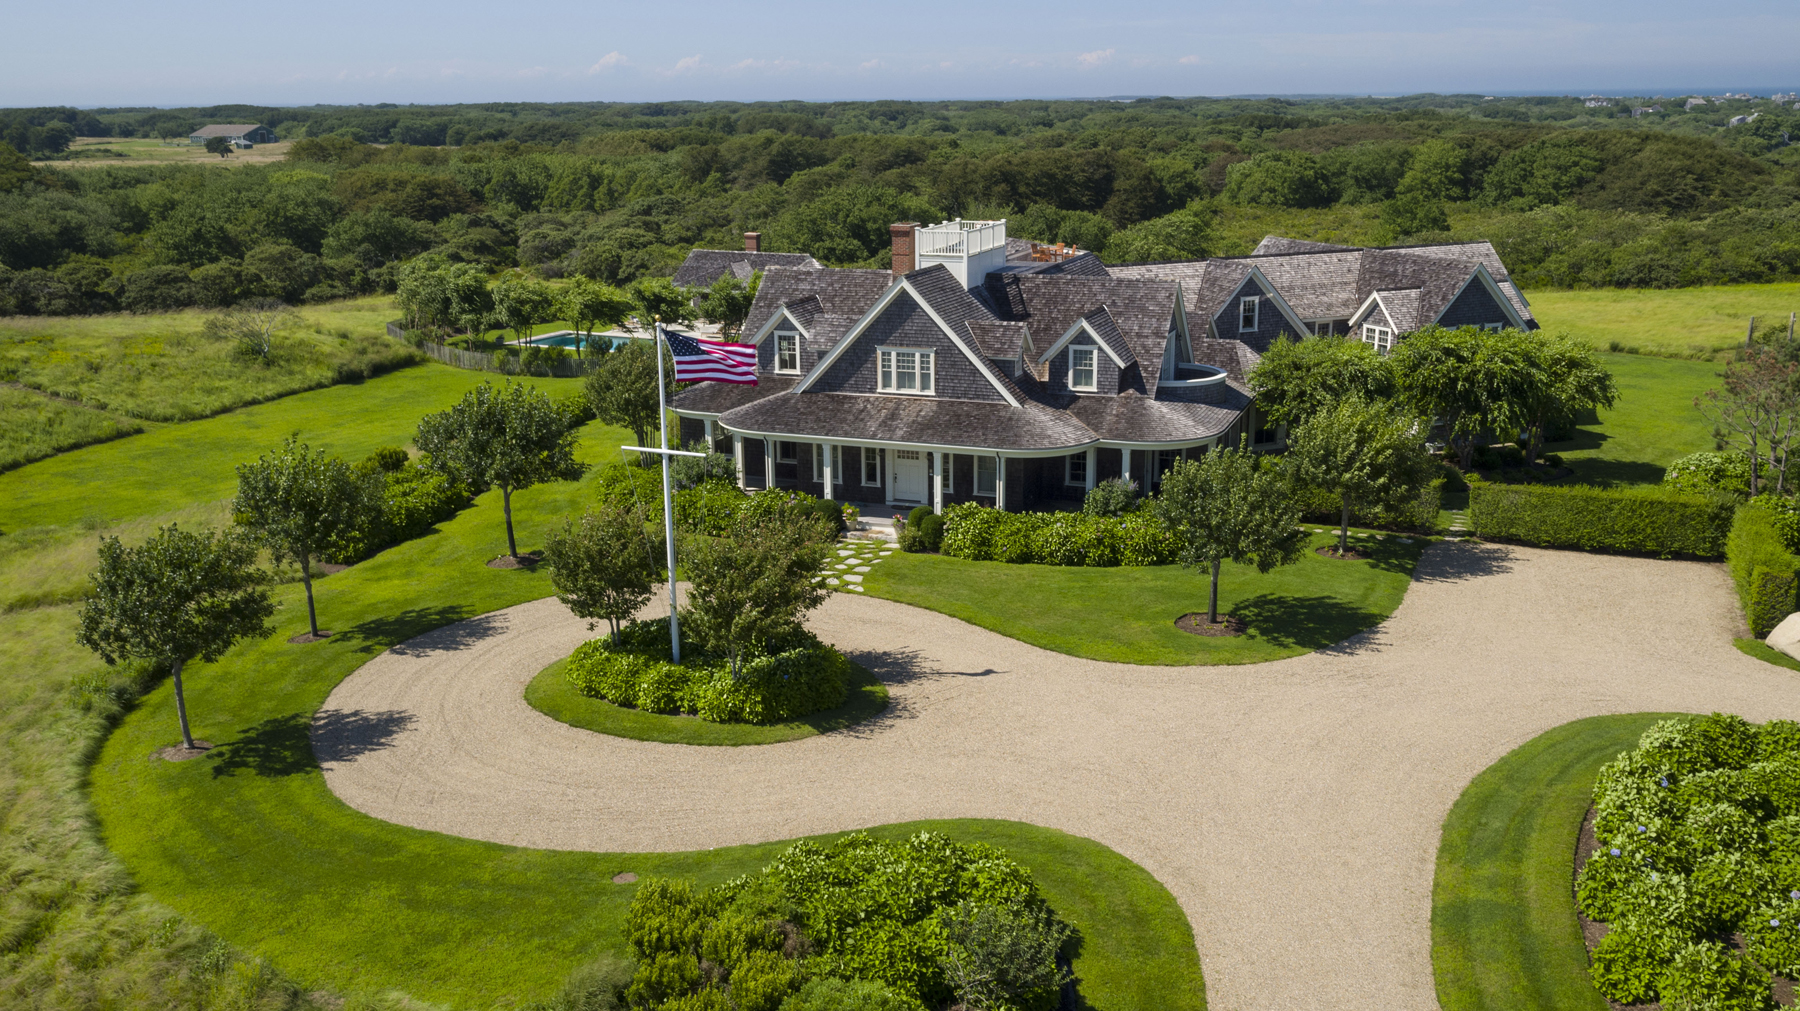 Casa Unifamiliar por un Venta en Private Estate Over 14 Acres 30R Quidnet Rd Nantucket, Massachusetts, 02554 Estados Unidos